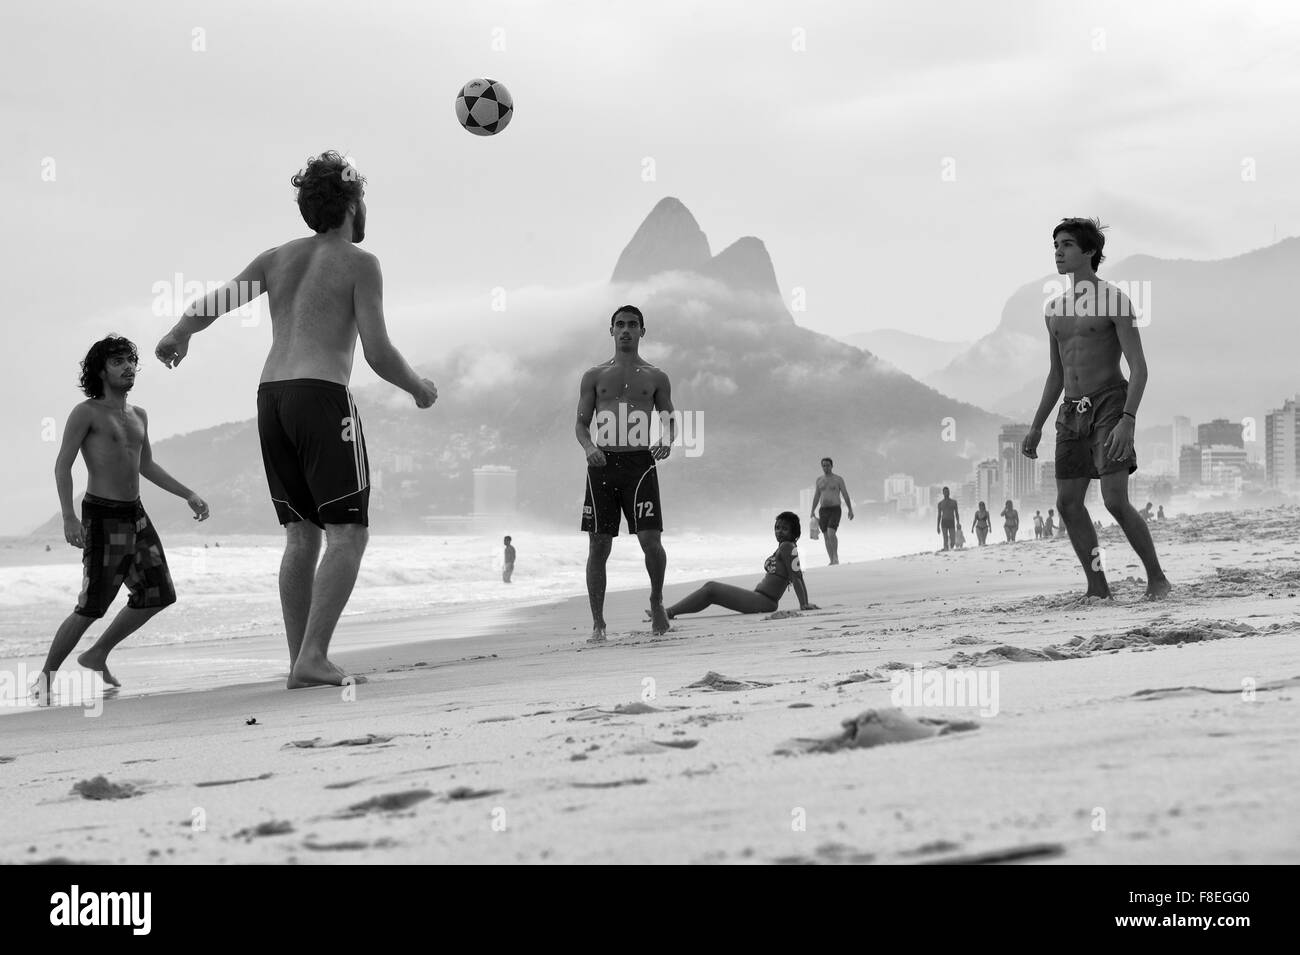 RIO DE JANEIRO, BRAZIL - APRIL 1, 2014: Group of Brazilian men and women play keepy uppy beach football on Ipanema - Stock Image